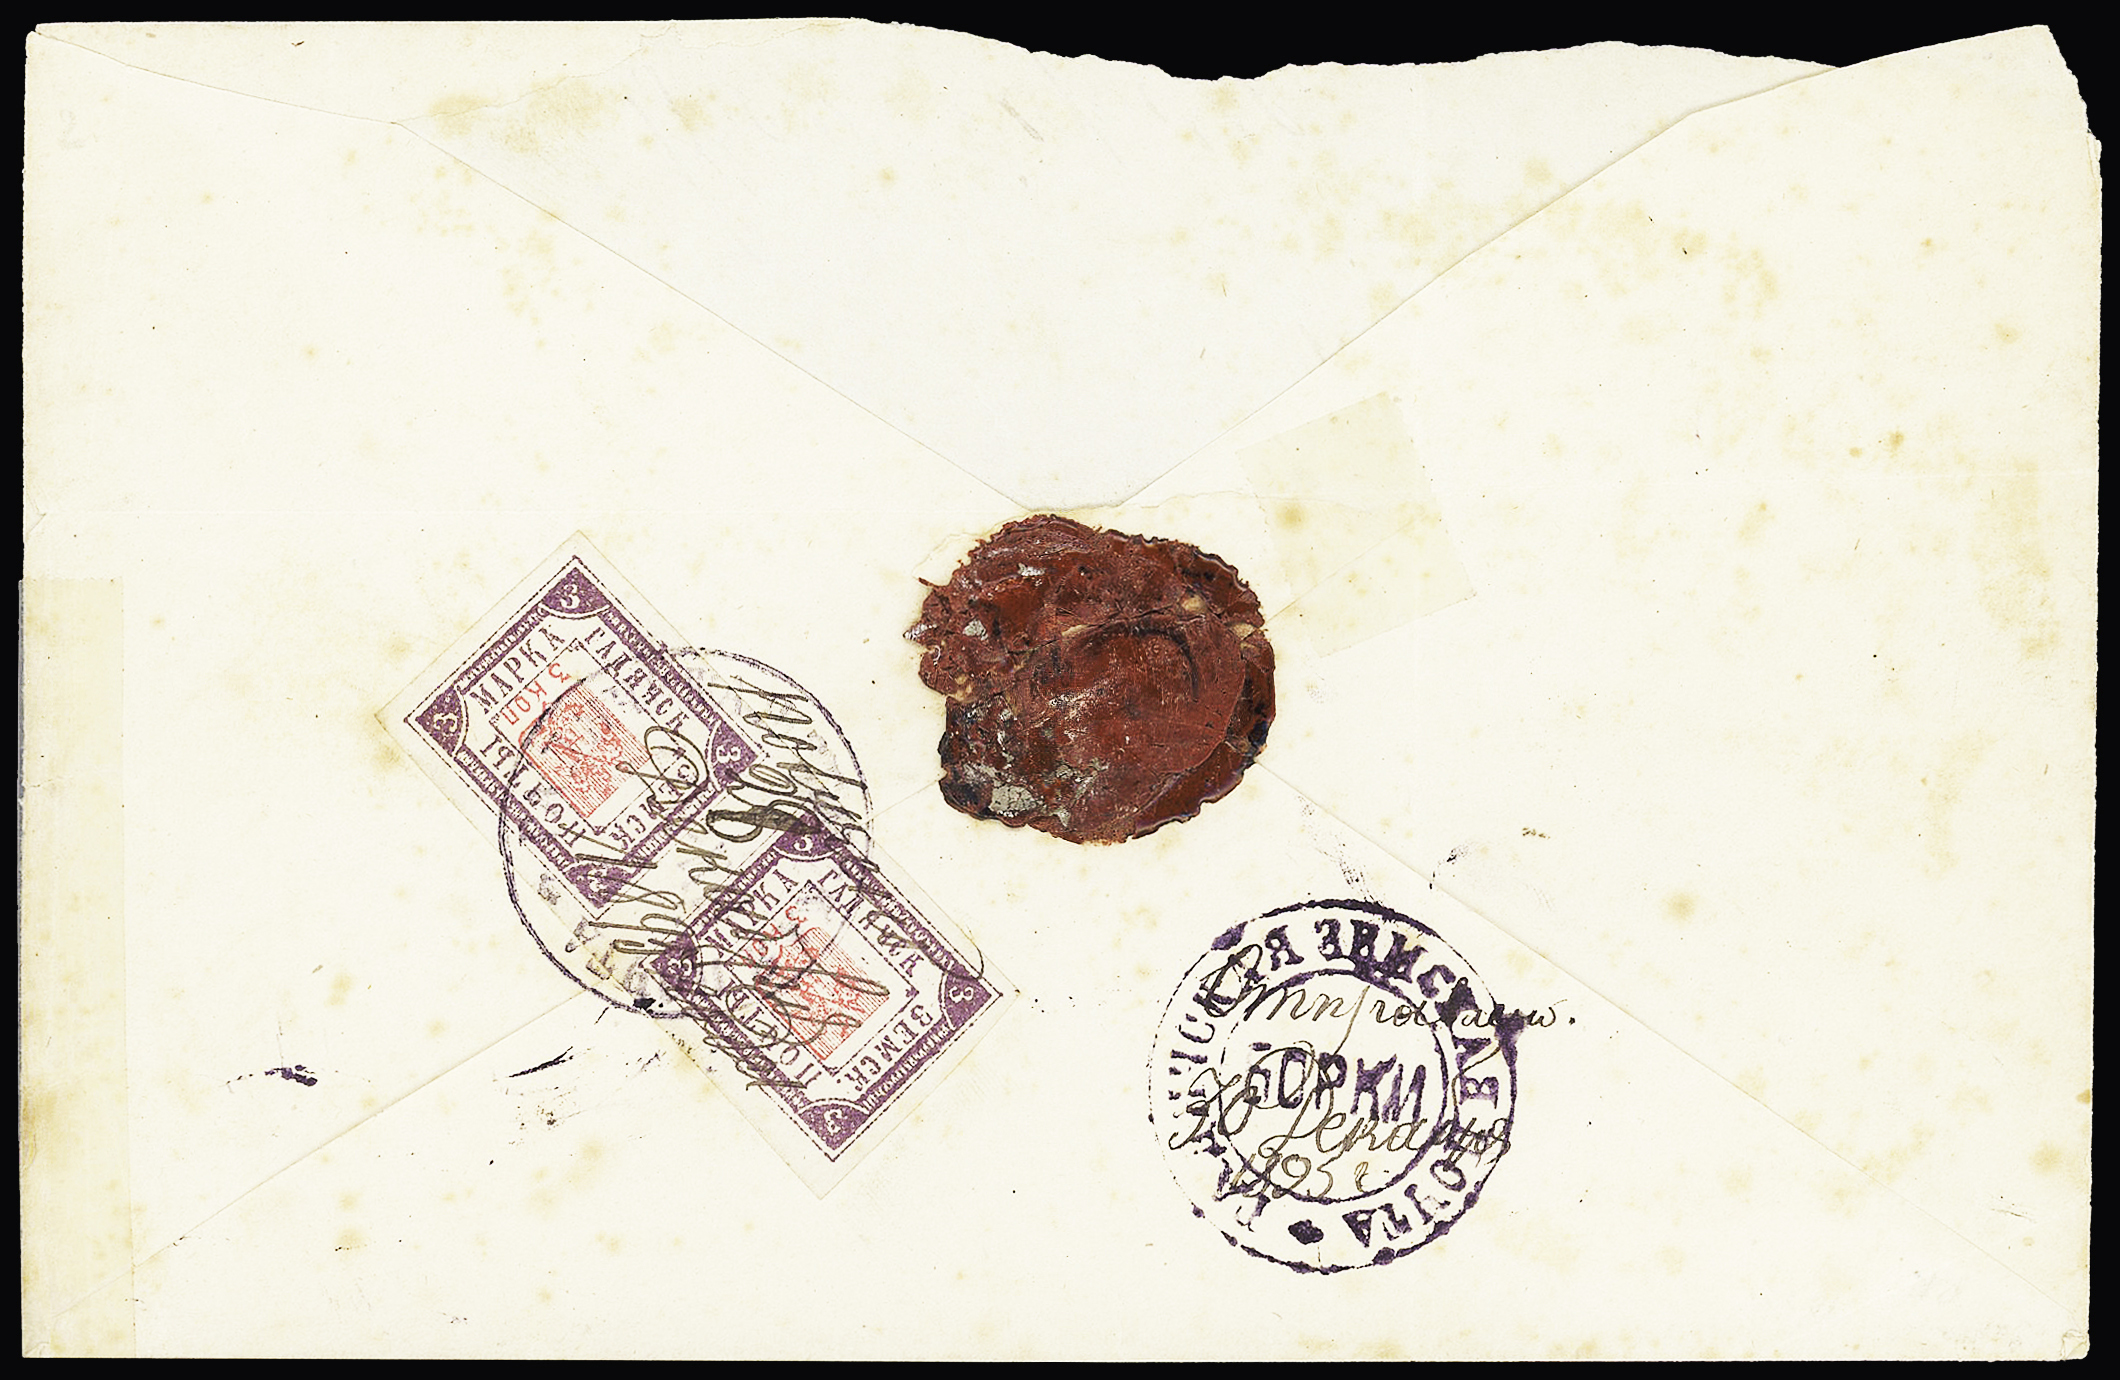 Lot 447 - Eastern Europe » RUSSIA - ZEMSTVOS » Gadiach  (Poltava Government)  -  Le Timbre Classique SA SALE ON OFFERS N ° 37 PARIS